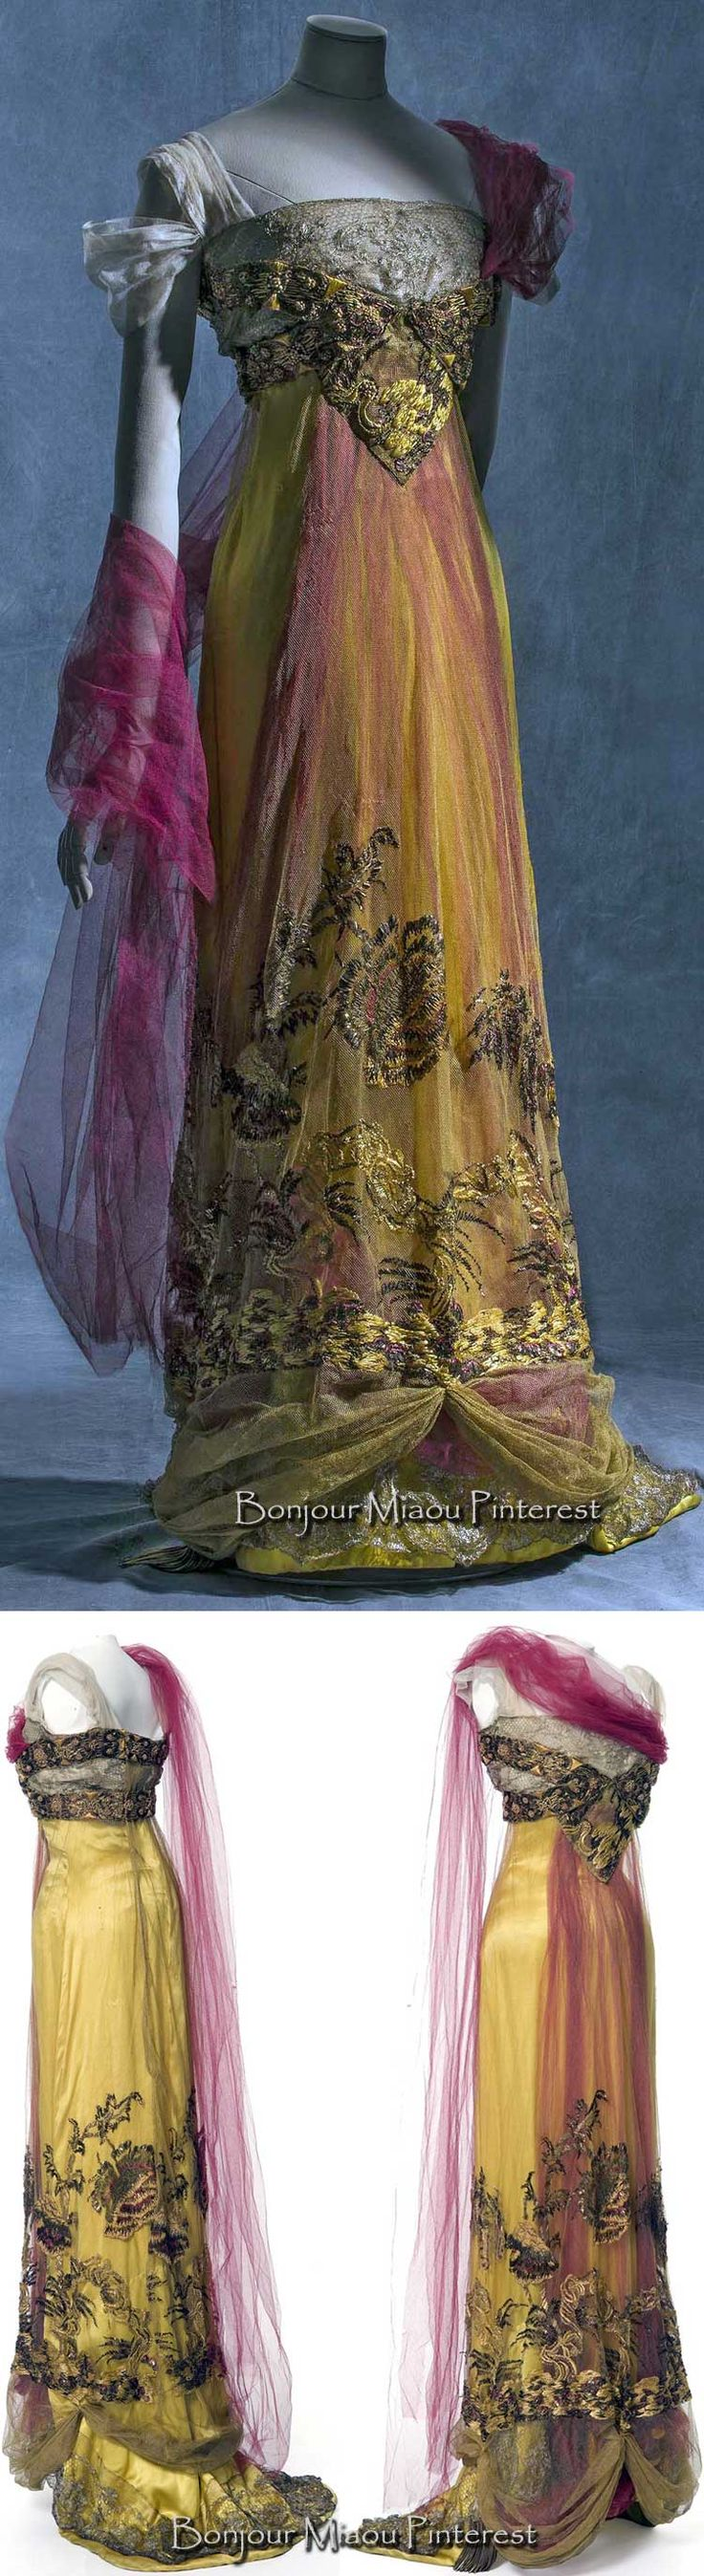 Evening gown, Callot Soeurs, ca. 1909–13 or 1907–10 (sources difffer). Silk satin, metallic tulle, and silk tulle. Photos: Jean Tholance. Les Arts Décoratifs and Europeana Fashion | JV